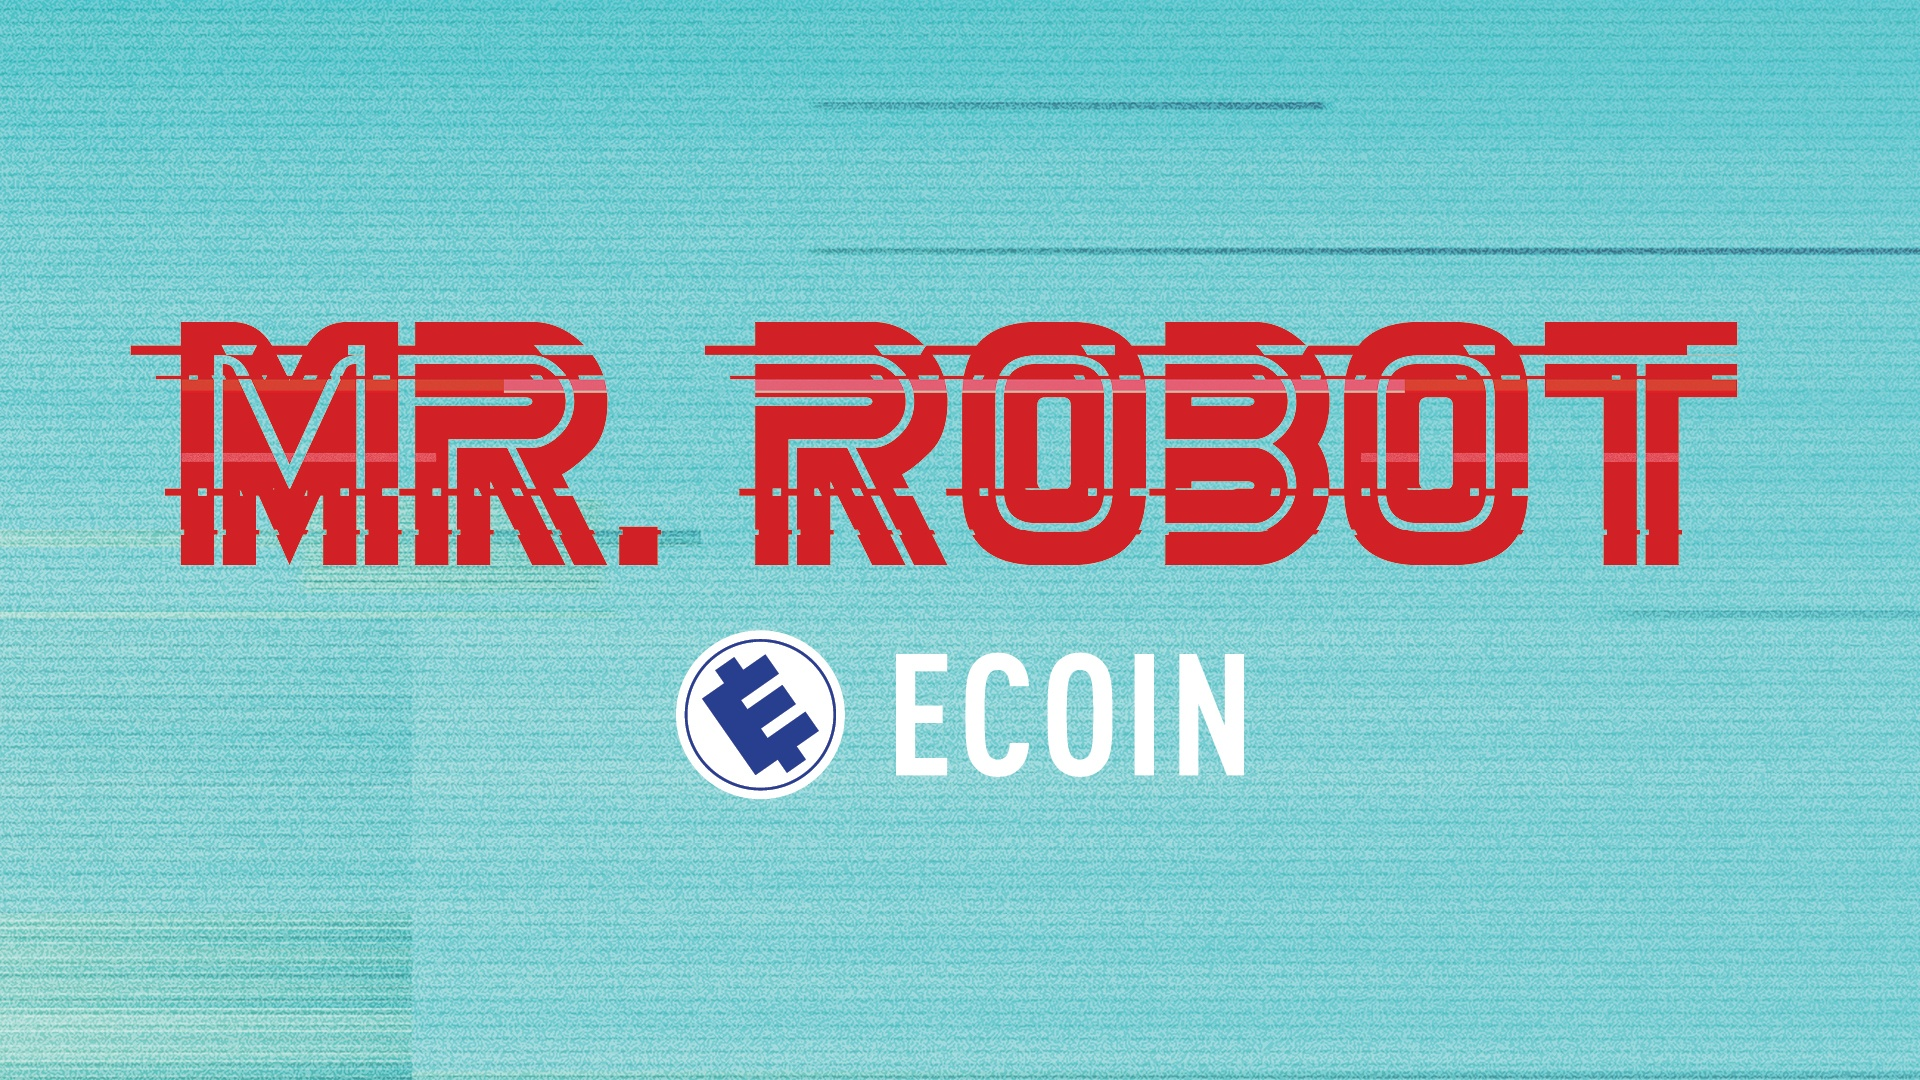 Thumbnail for Mr. Robot: Ecoin